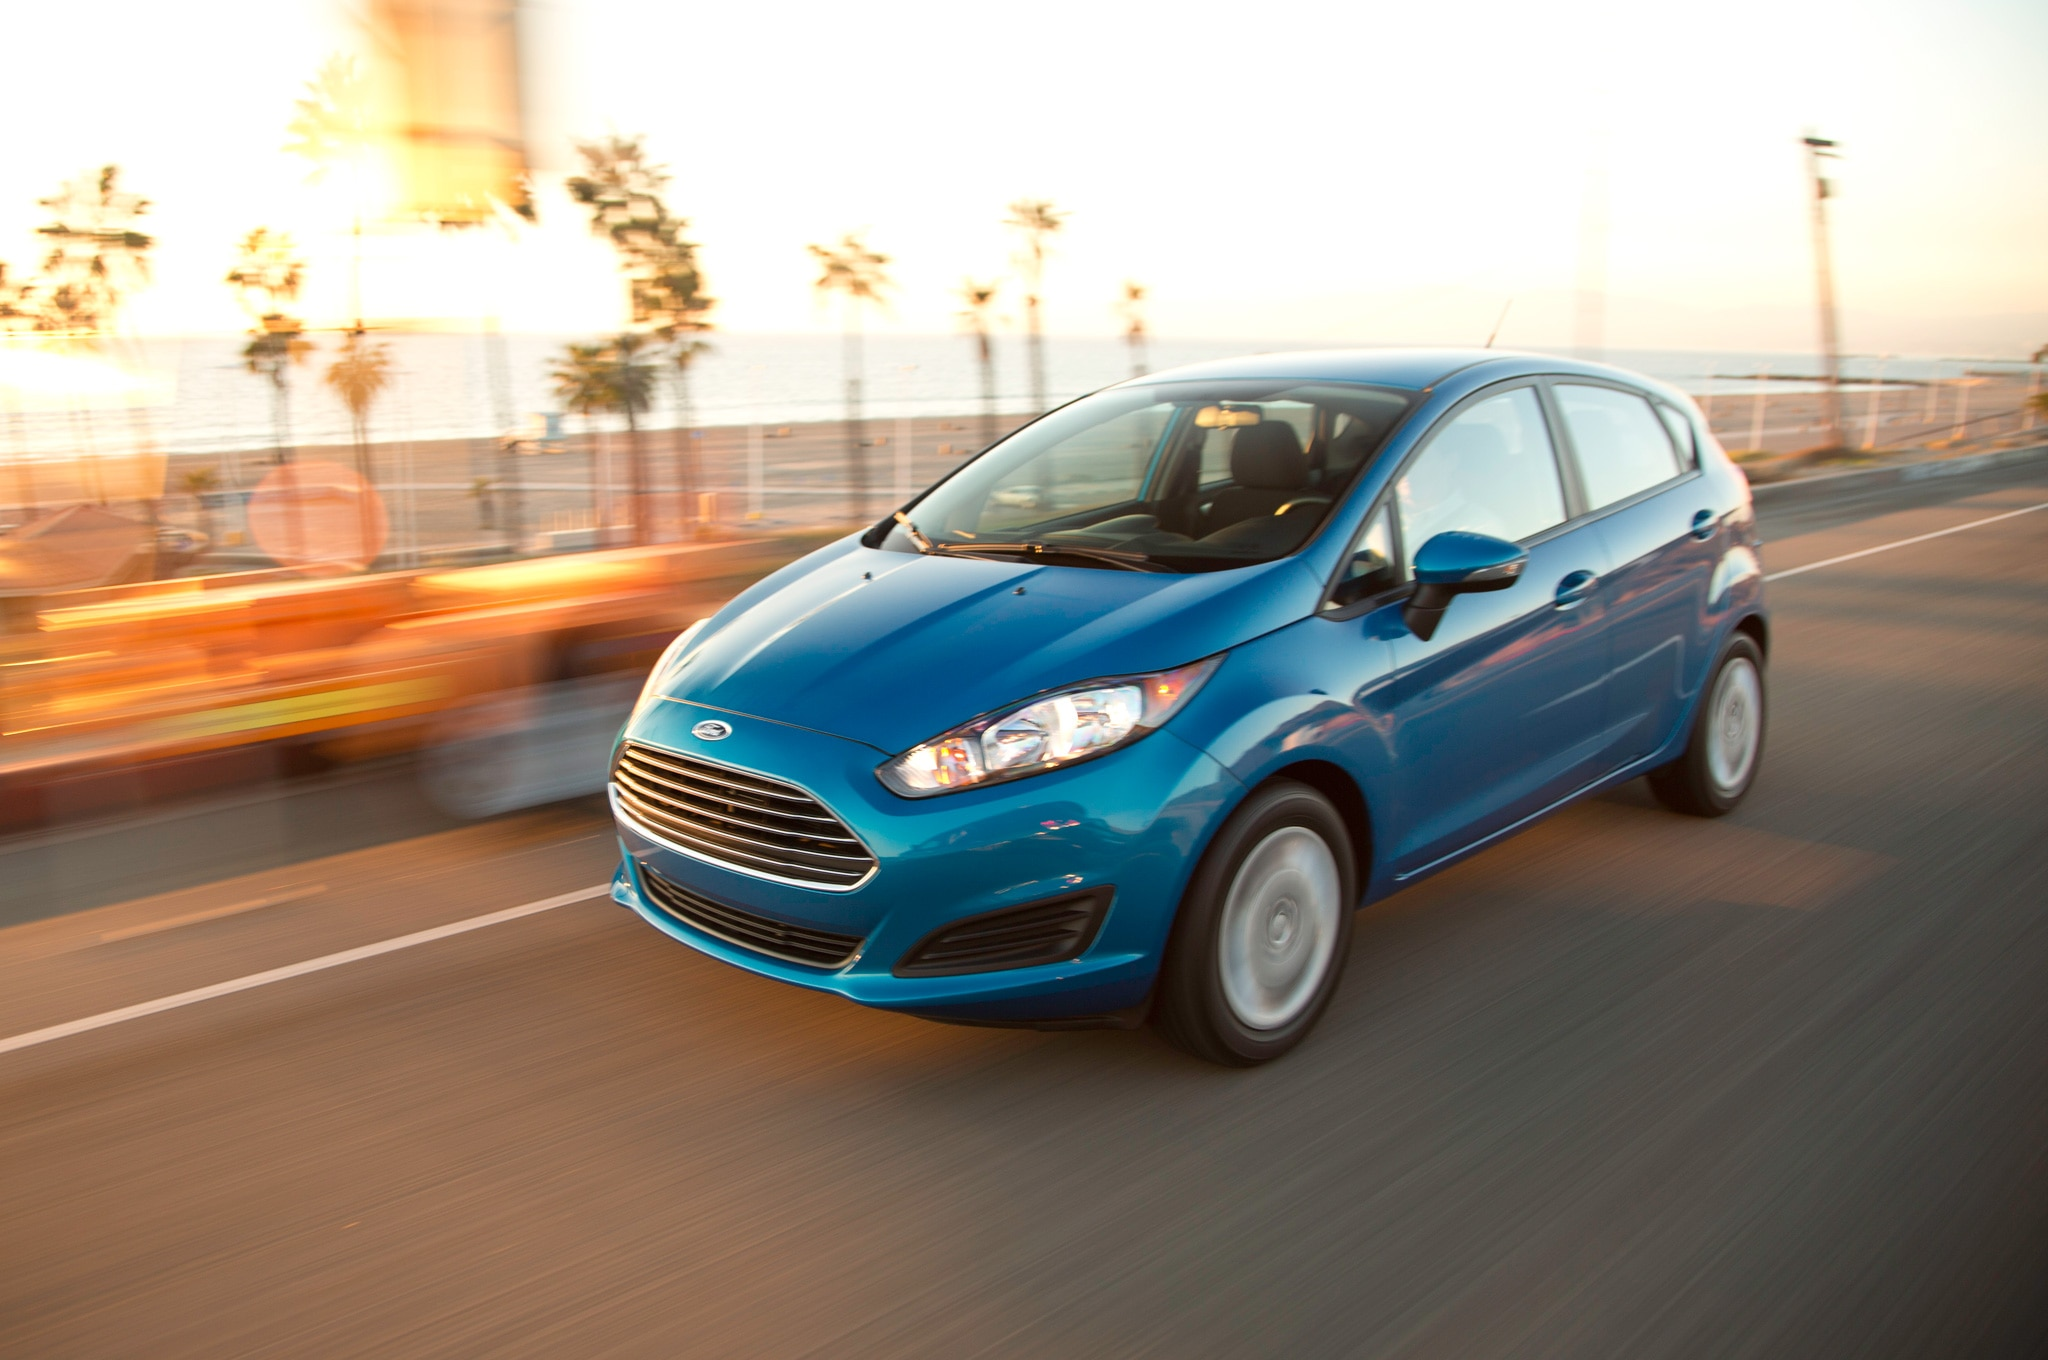 2014 Ford Fiesta SFE EcoBoost In Motion